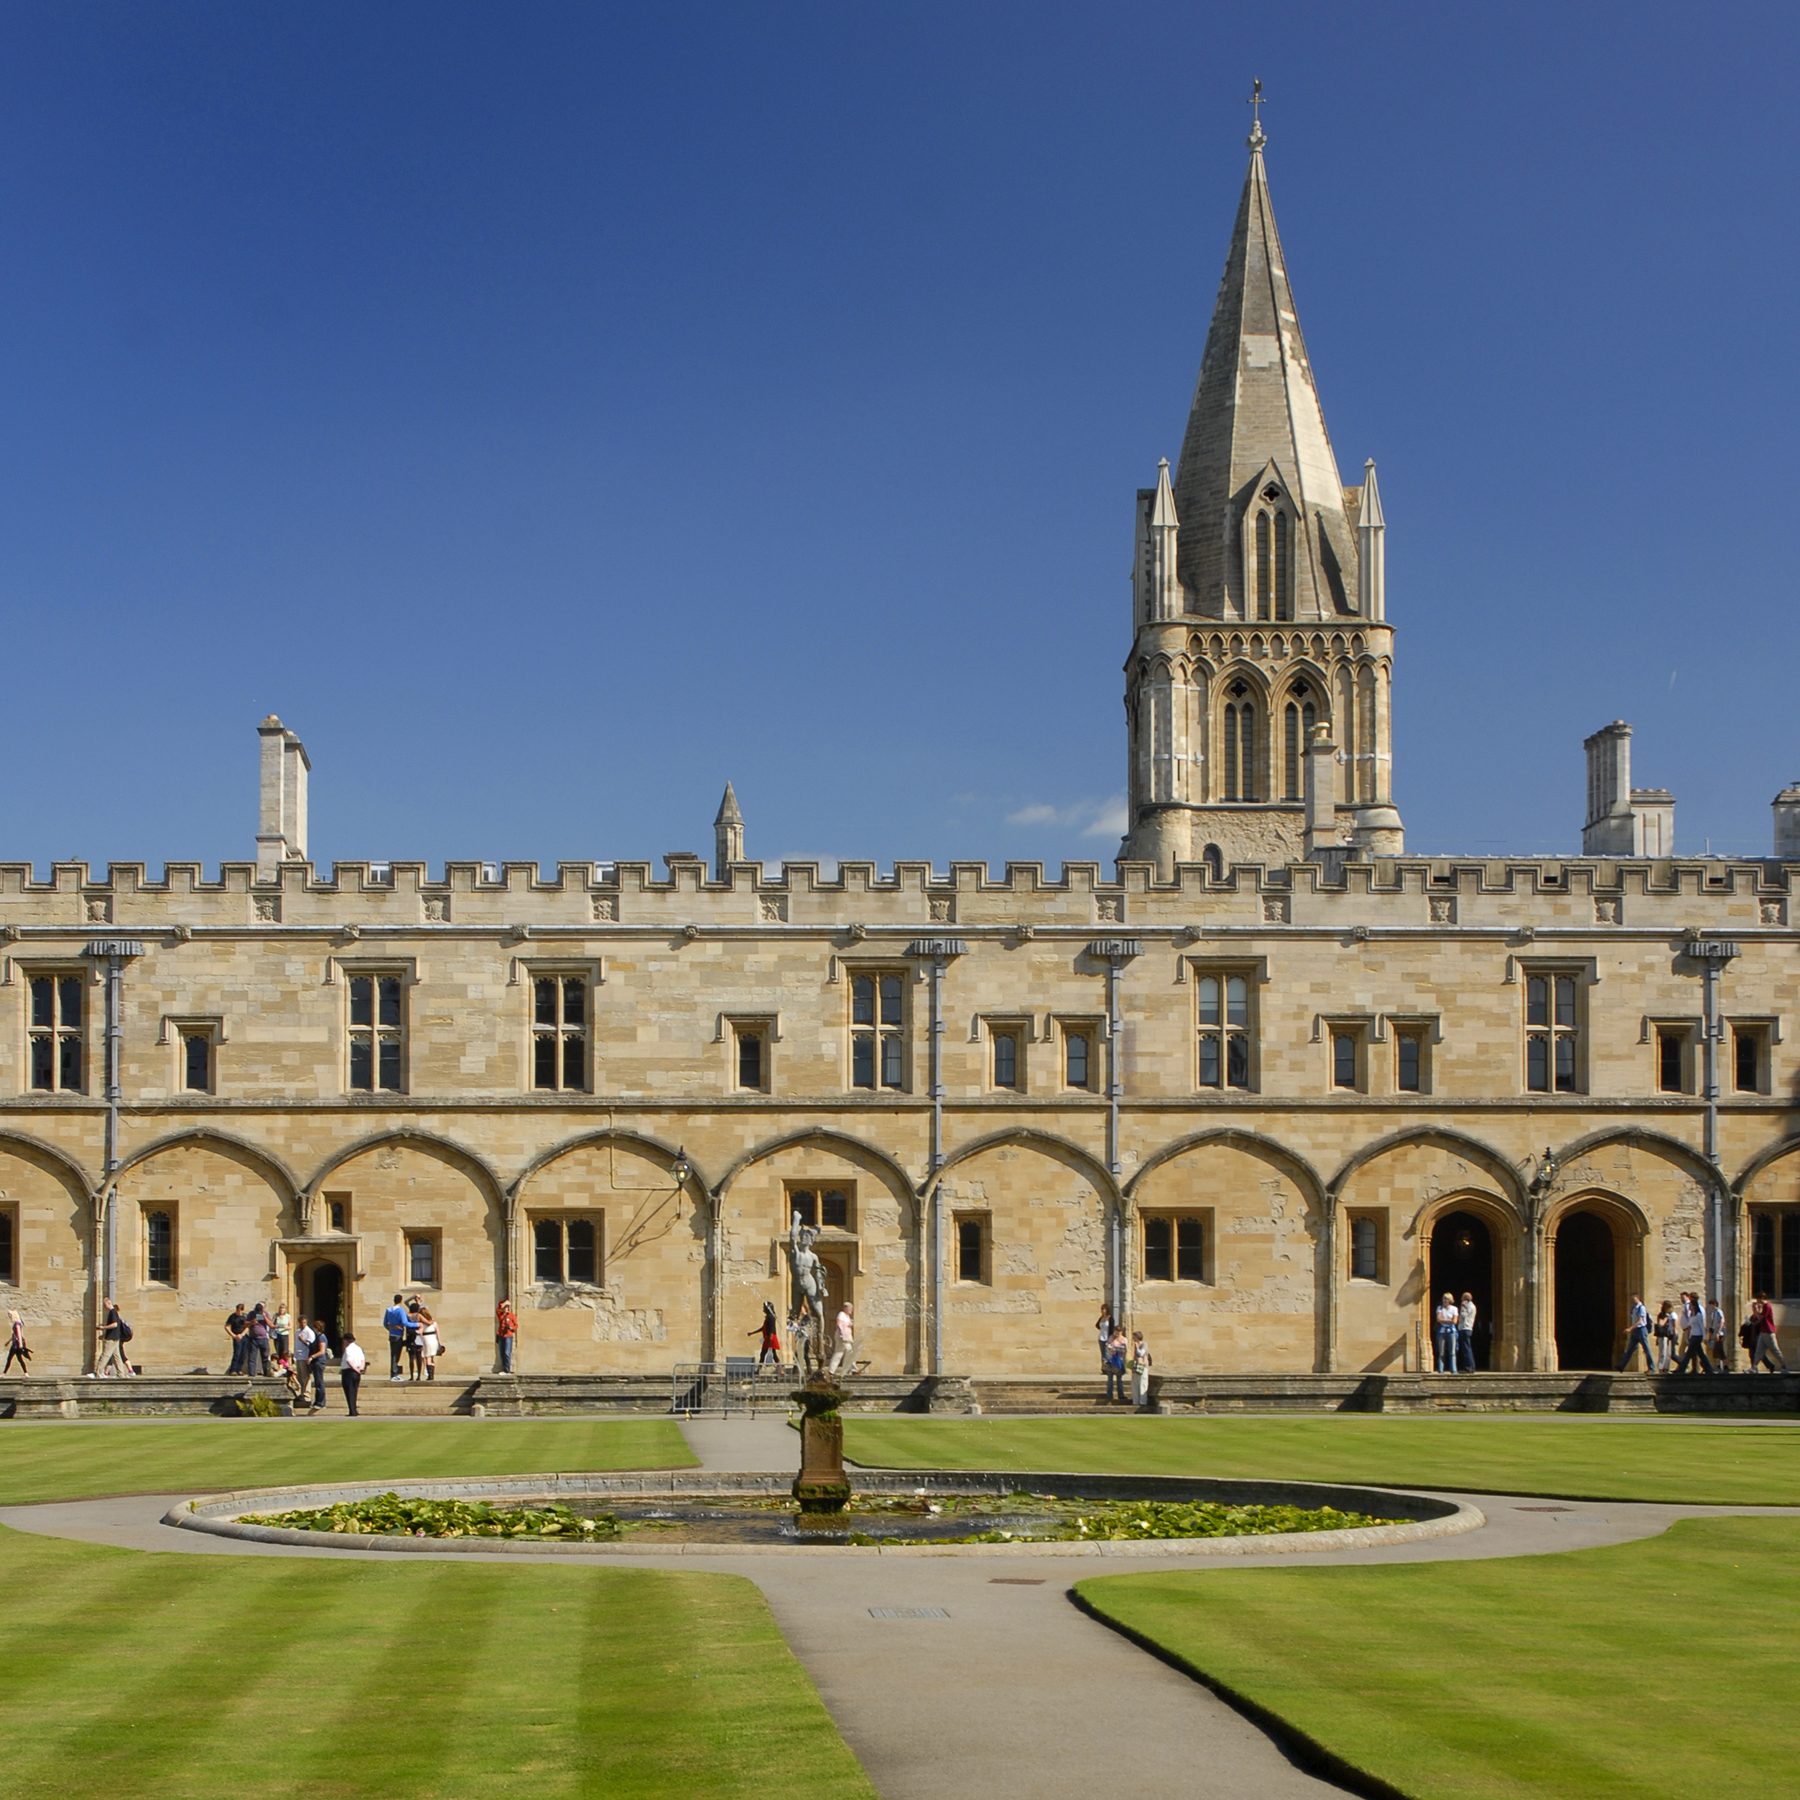 UK - Oxford - Christ Church - Tom Quad sq_DS23221.jpg